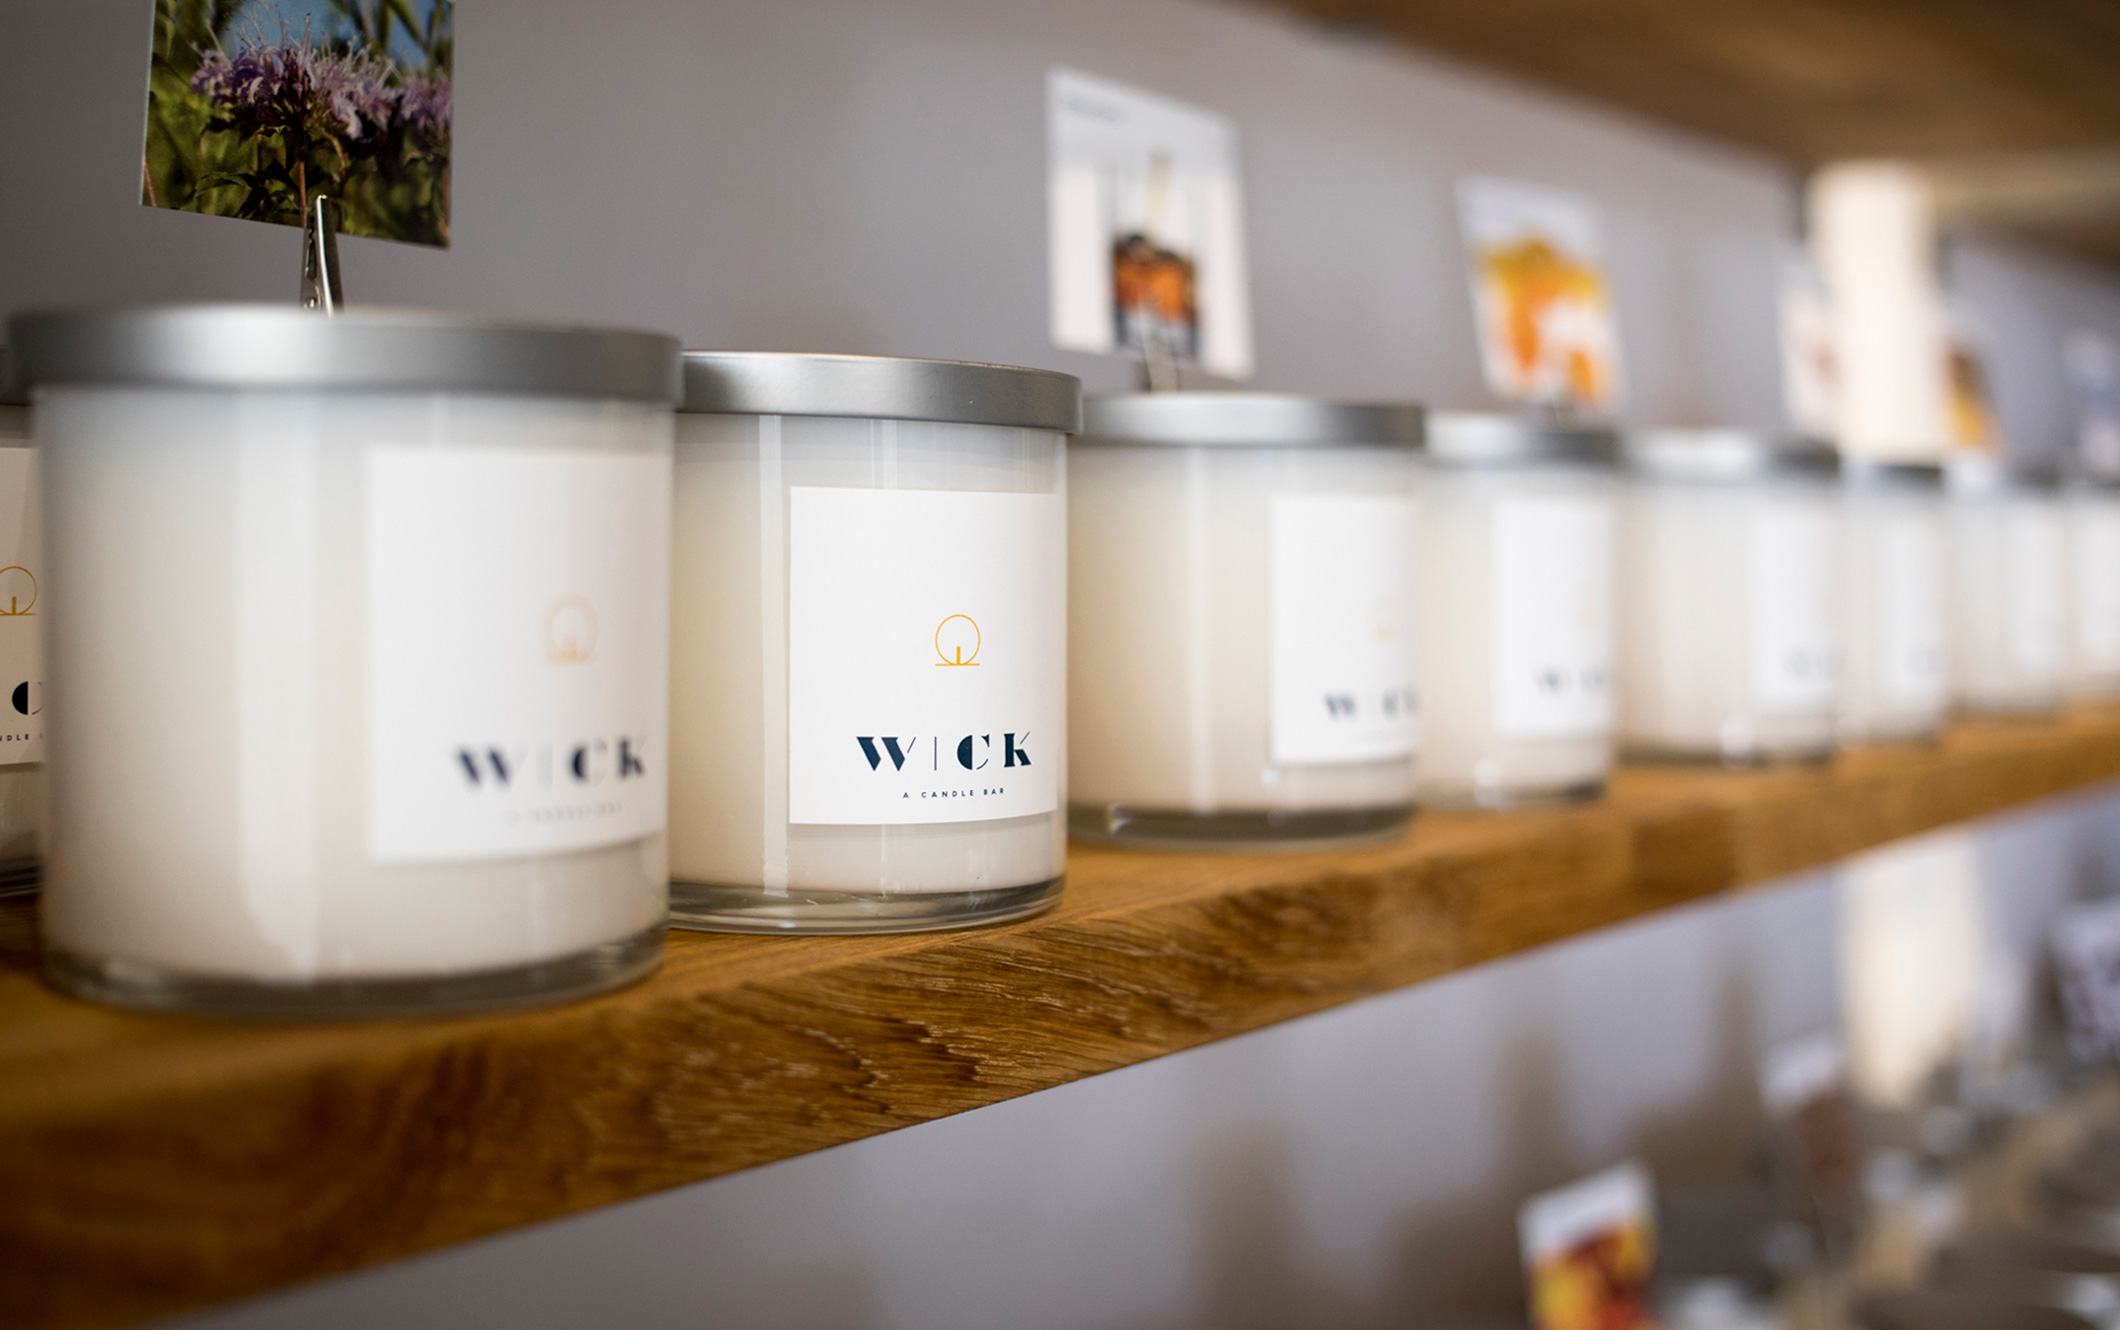 Photo of store shelf, showing single-scent candles from Wick